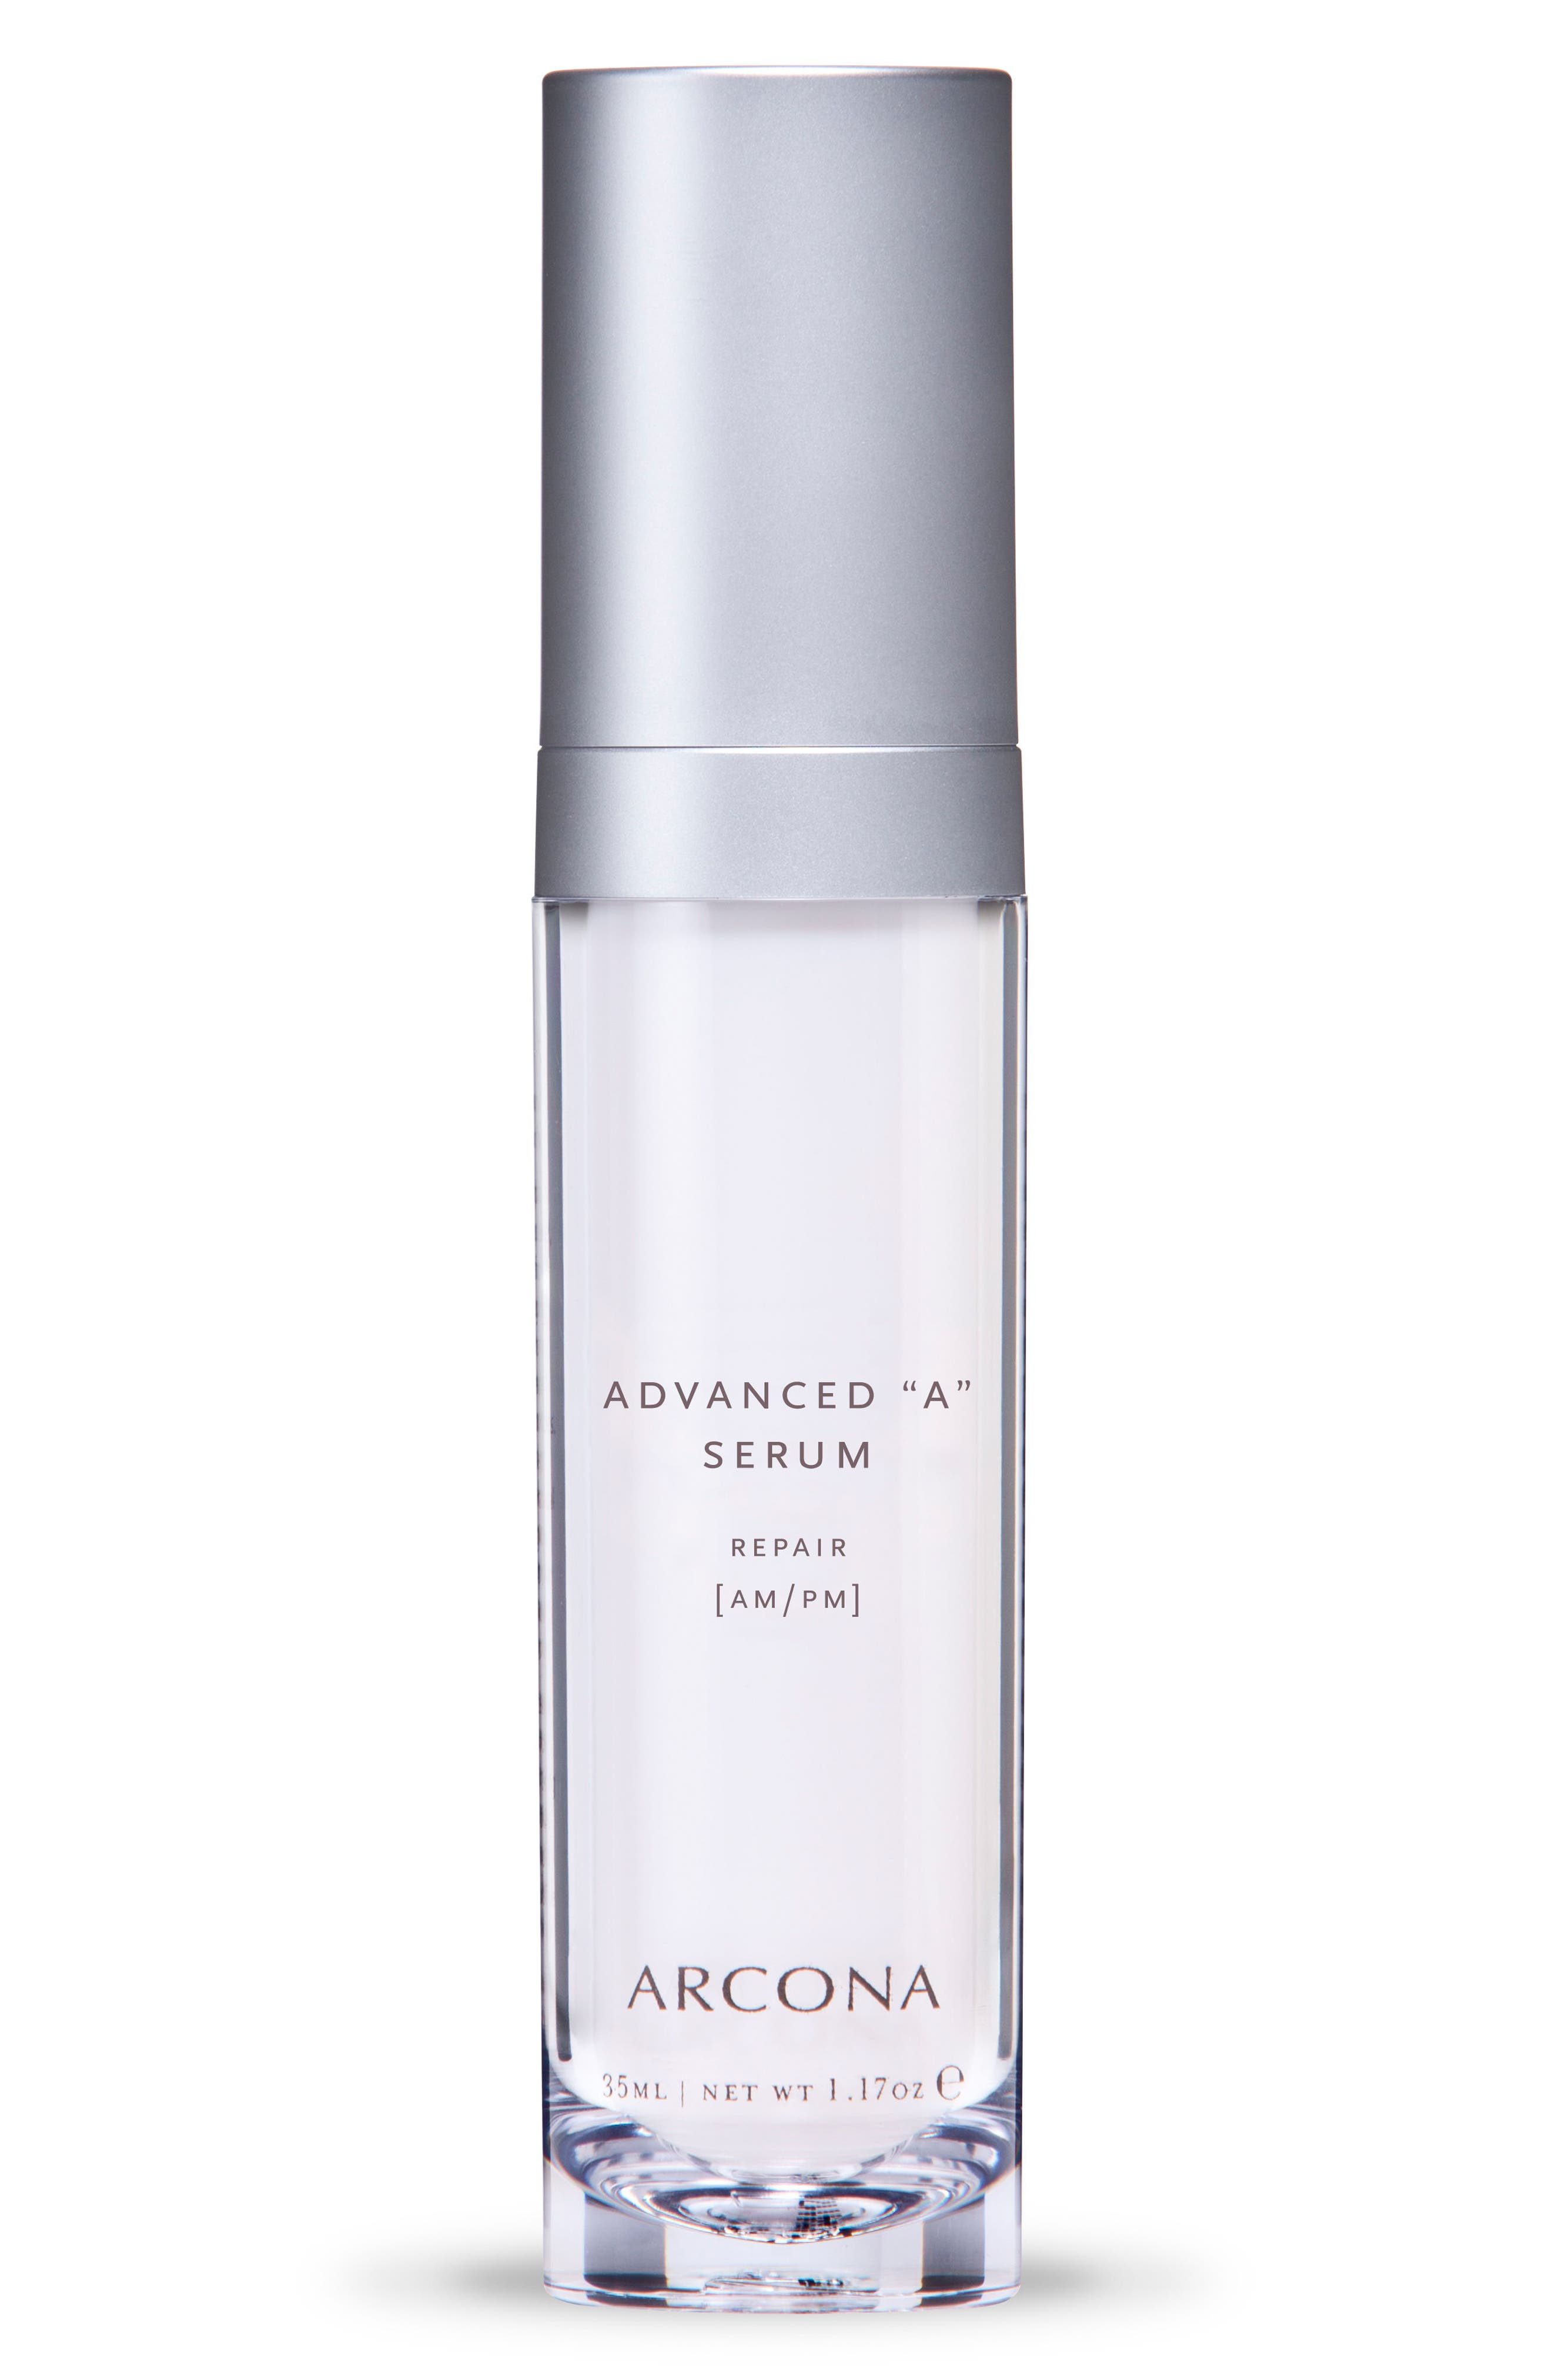 ARCONA Advanced A Serum